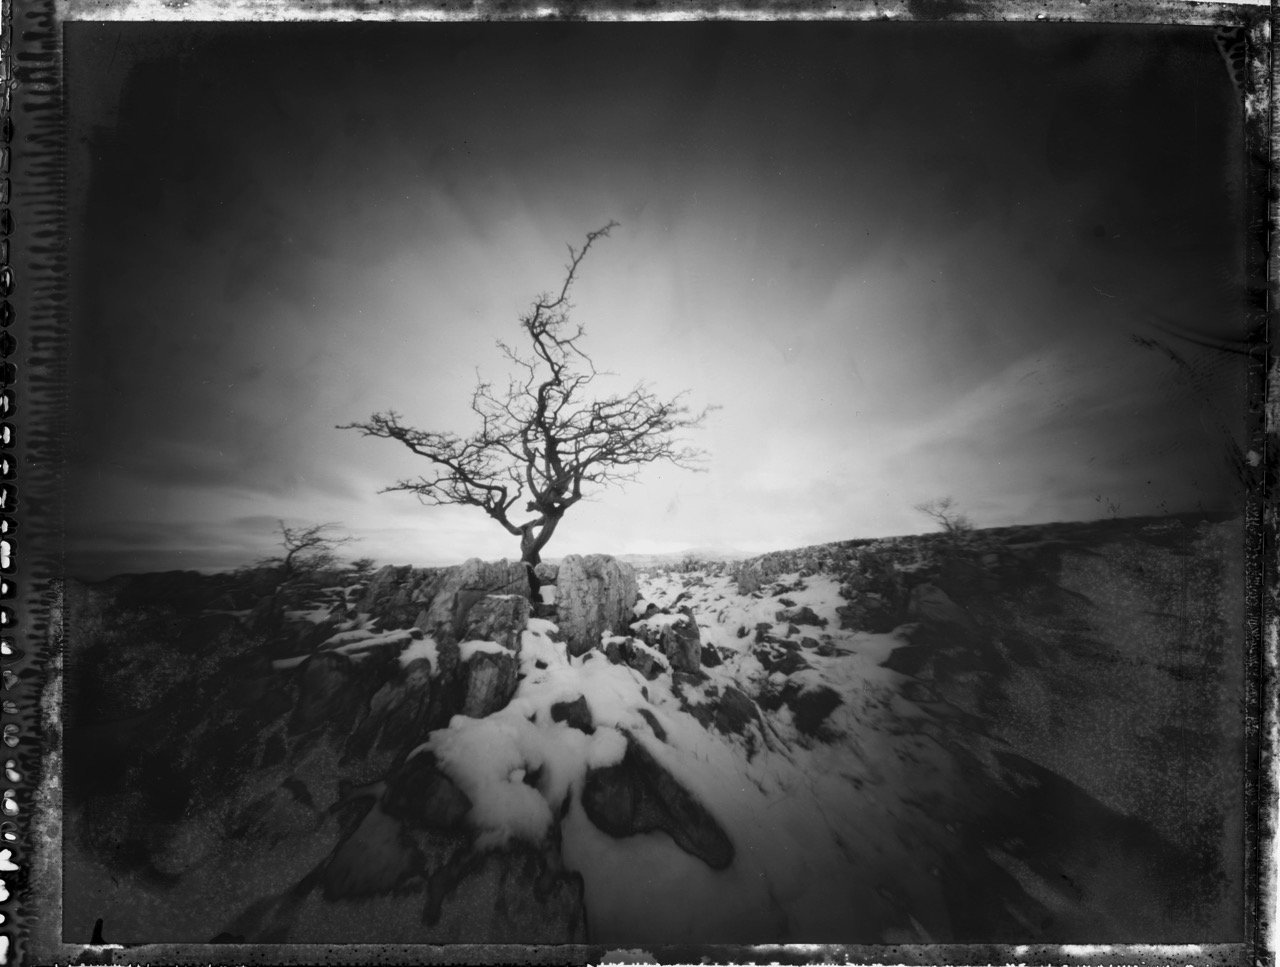 Southerscales Scars, Zero Image 4×5, Polaroid 55, ©Mark Rowell 2015